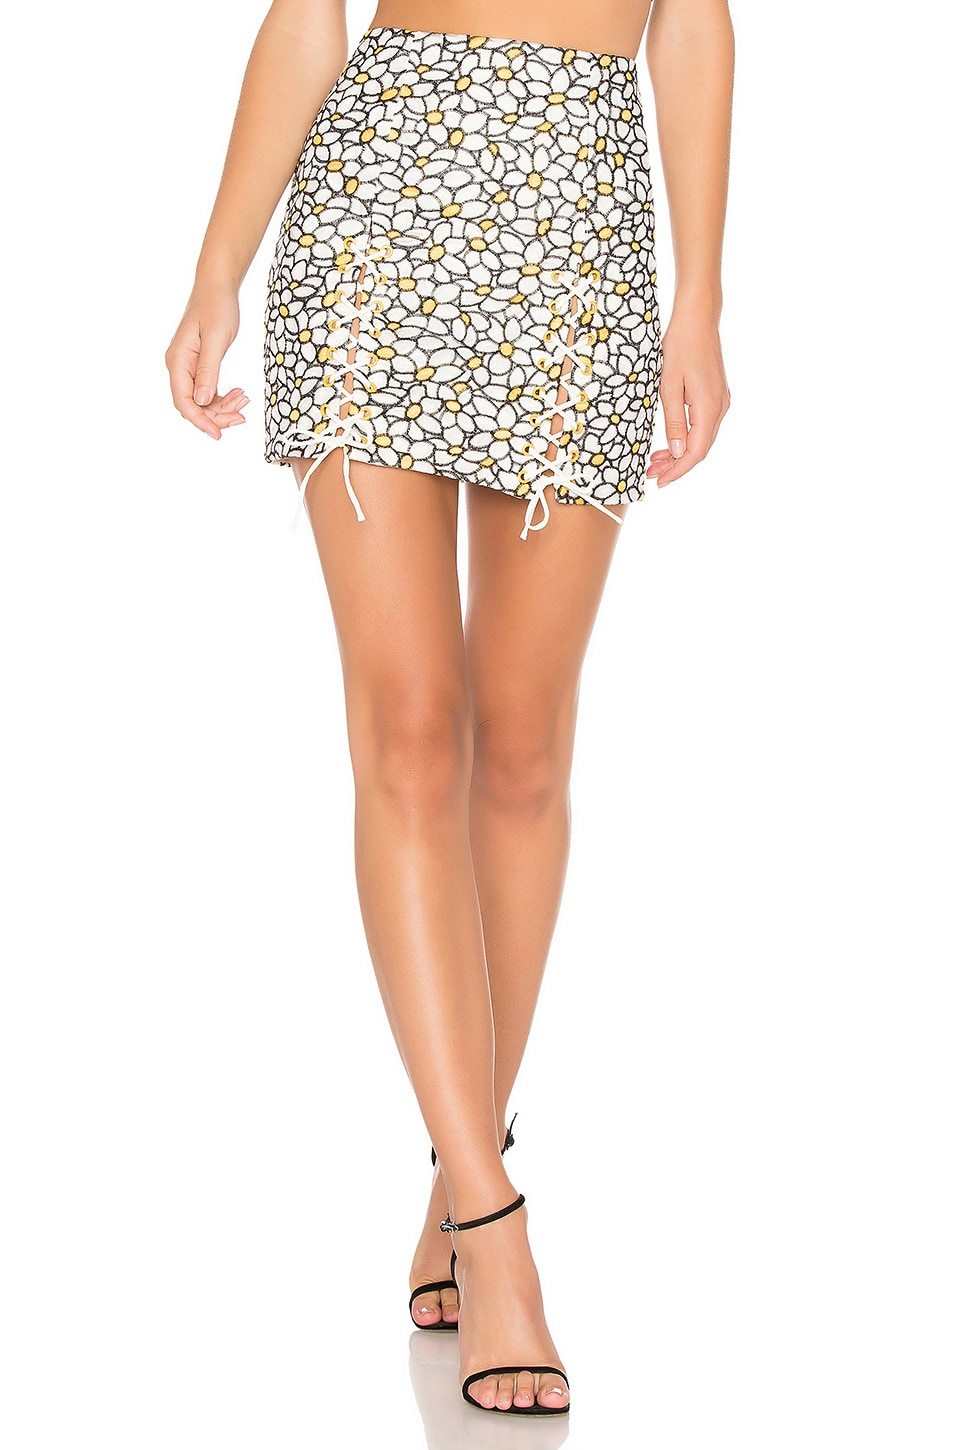 NBD Daisy Embroidered Mini Skirt in White Daisy